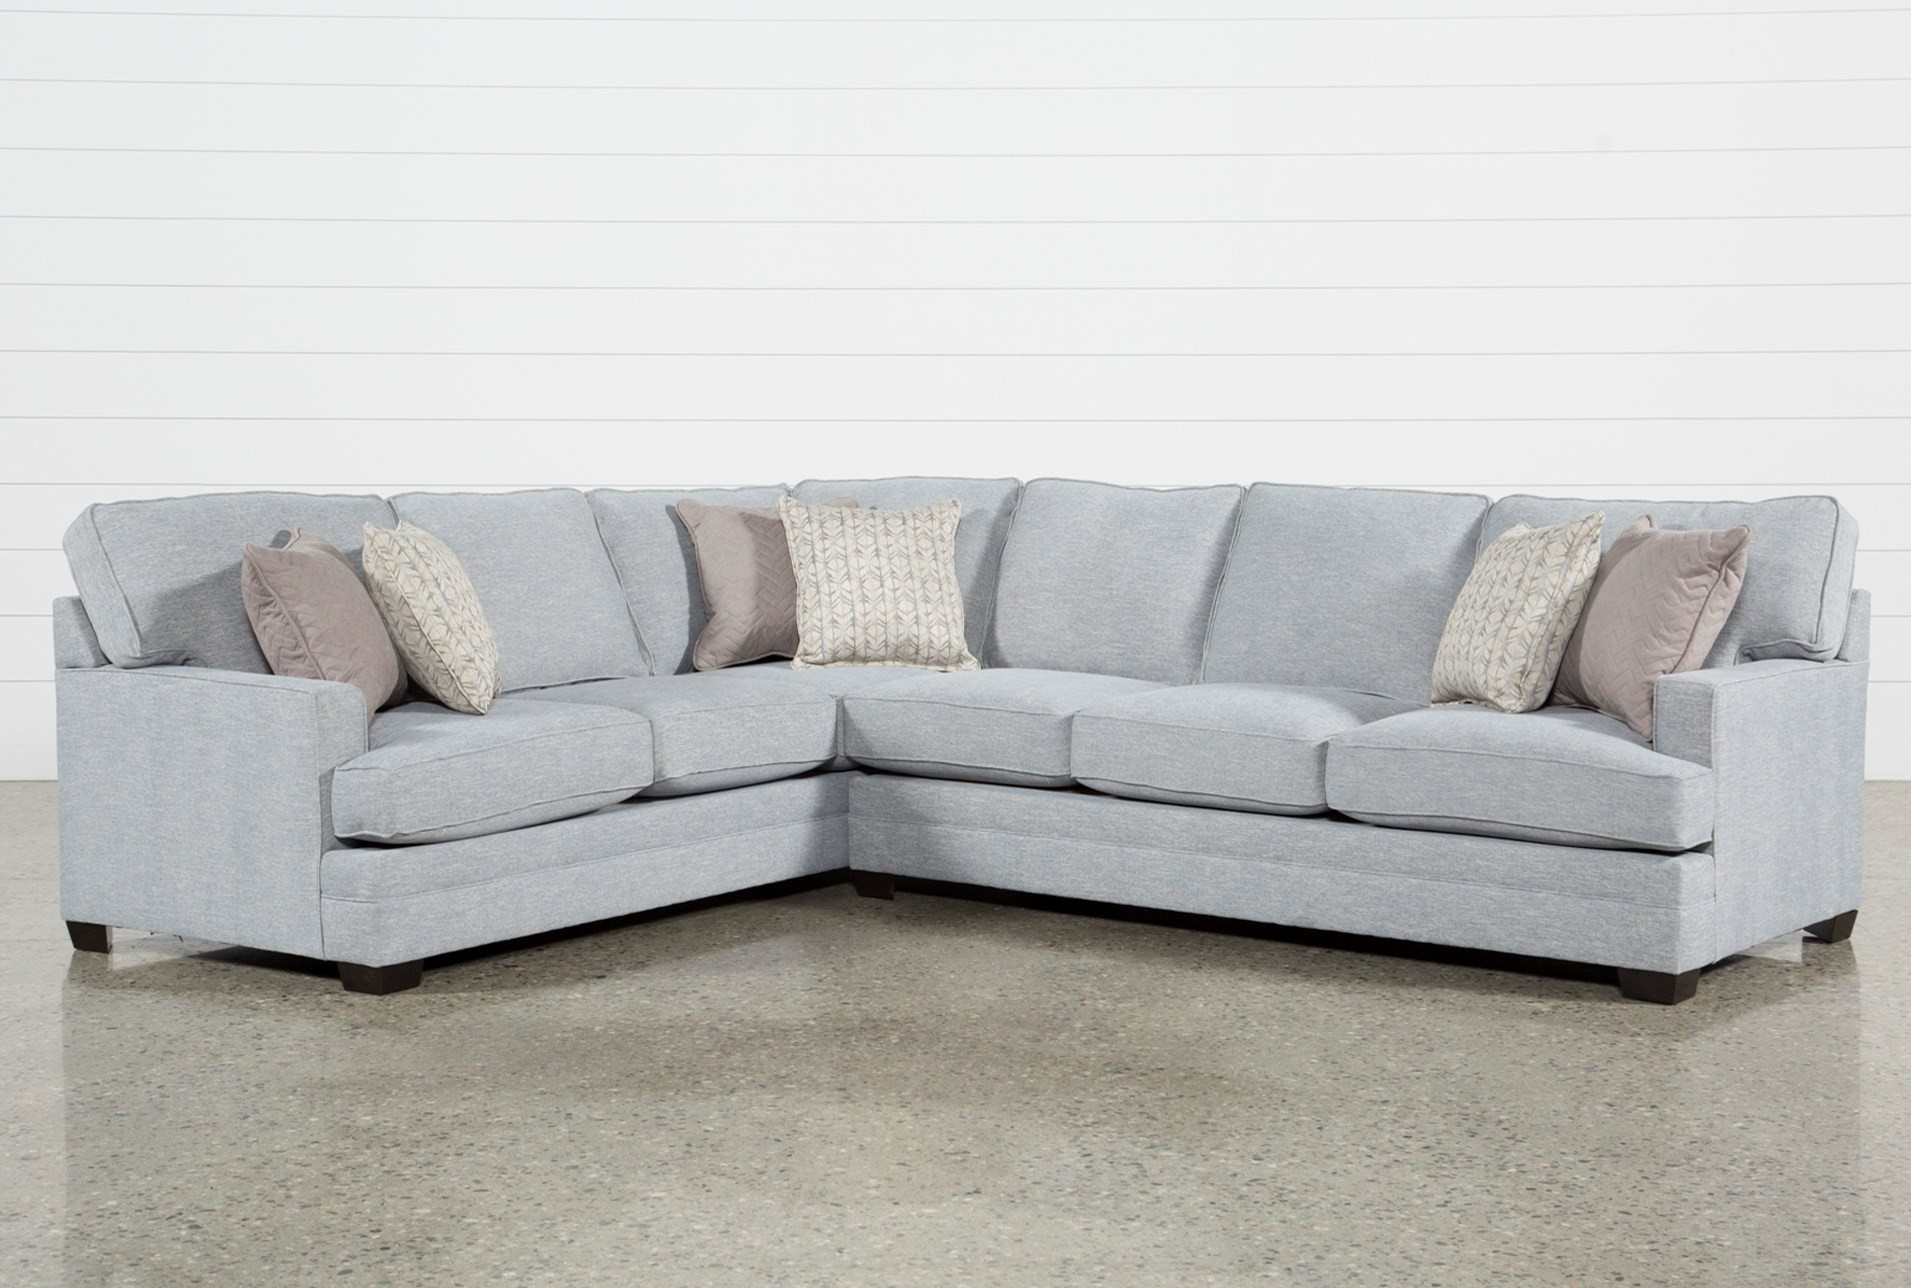 Living Spaces Sectional Alder 4 Piece Youtube Maxresdefault pertaining to Alder 4 Piece Sectionals (Image 18 of 30)